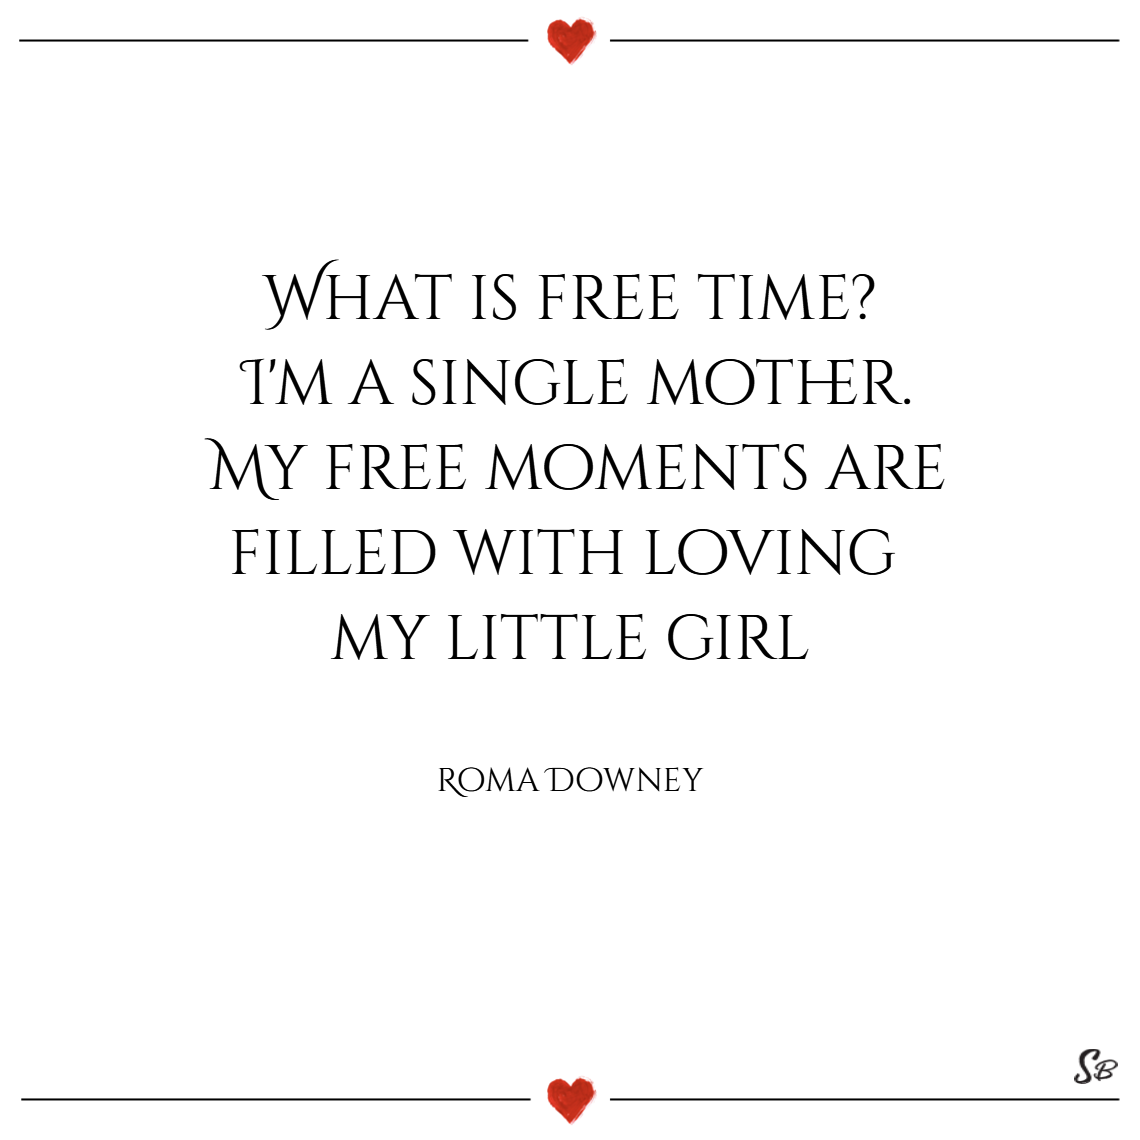 What is free time i'm a single mother. my free moments are filled with loving my little girl. – roma downey